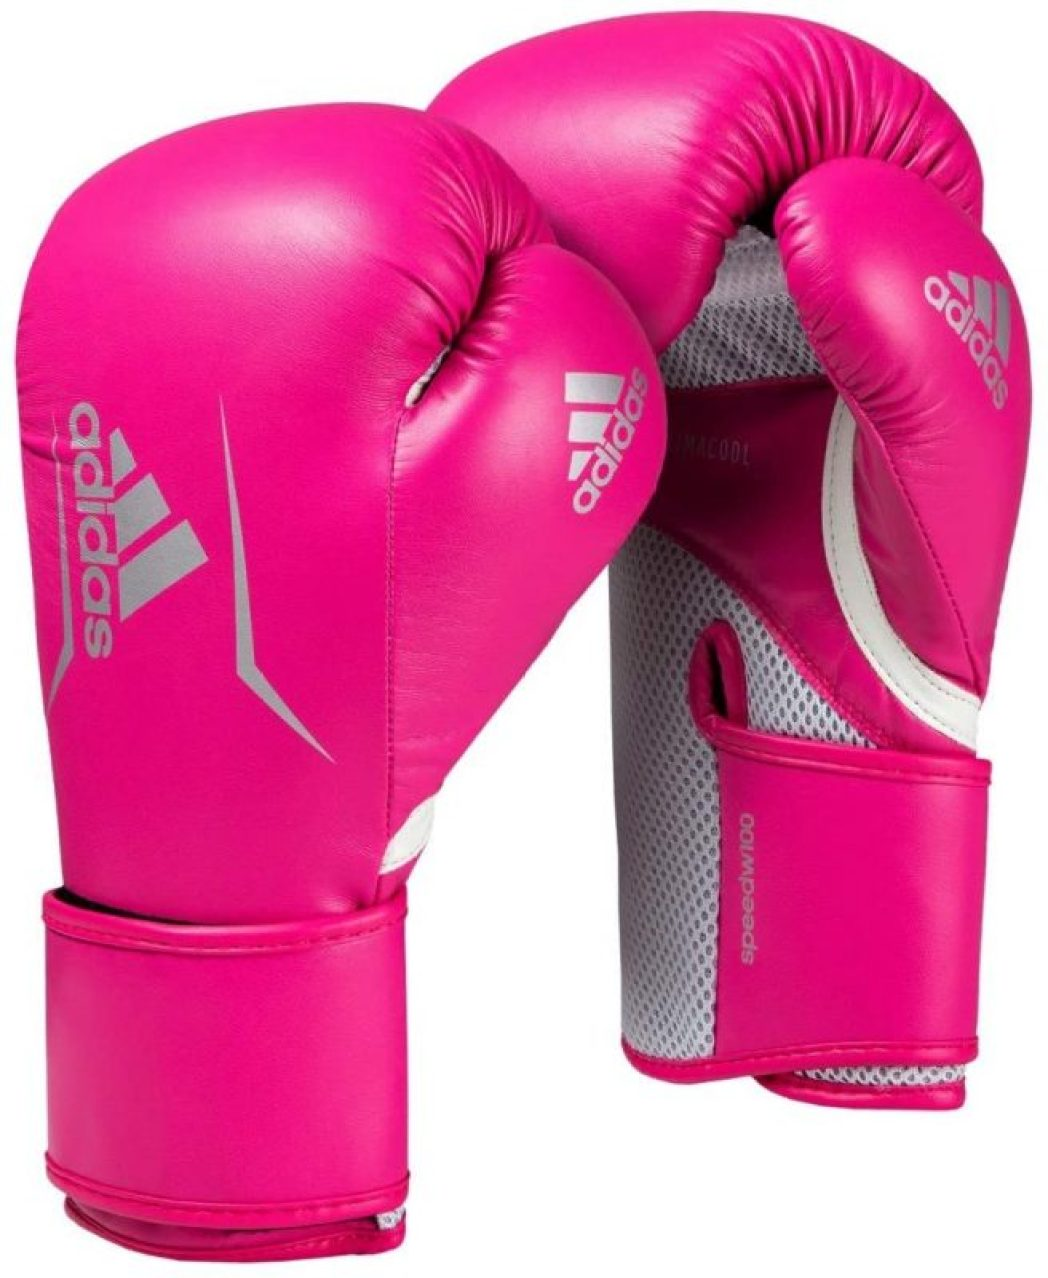 womens 16 oz boxing gloves